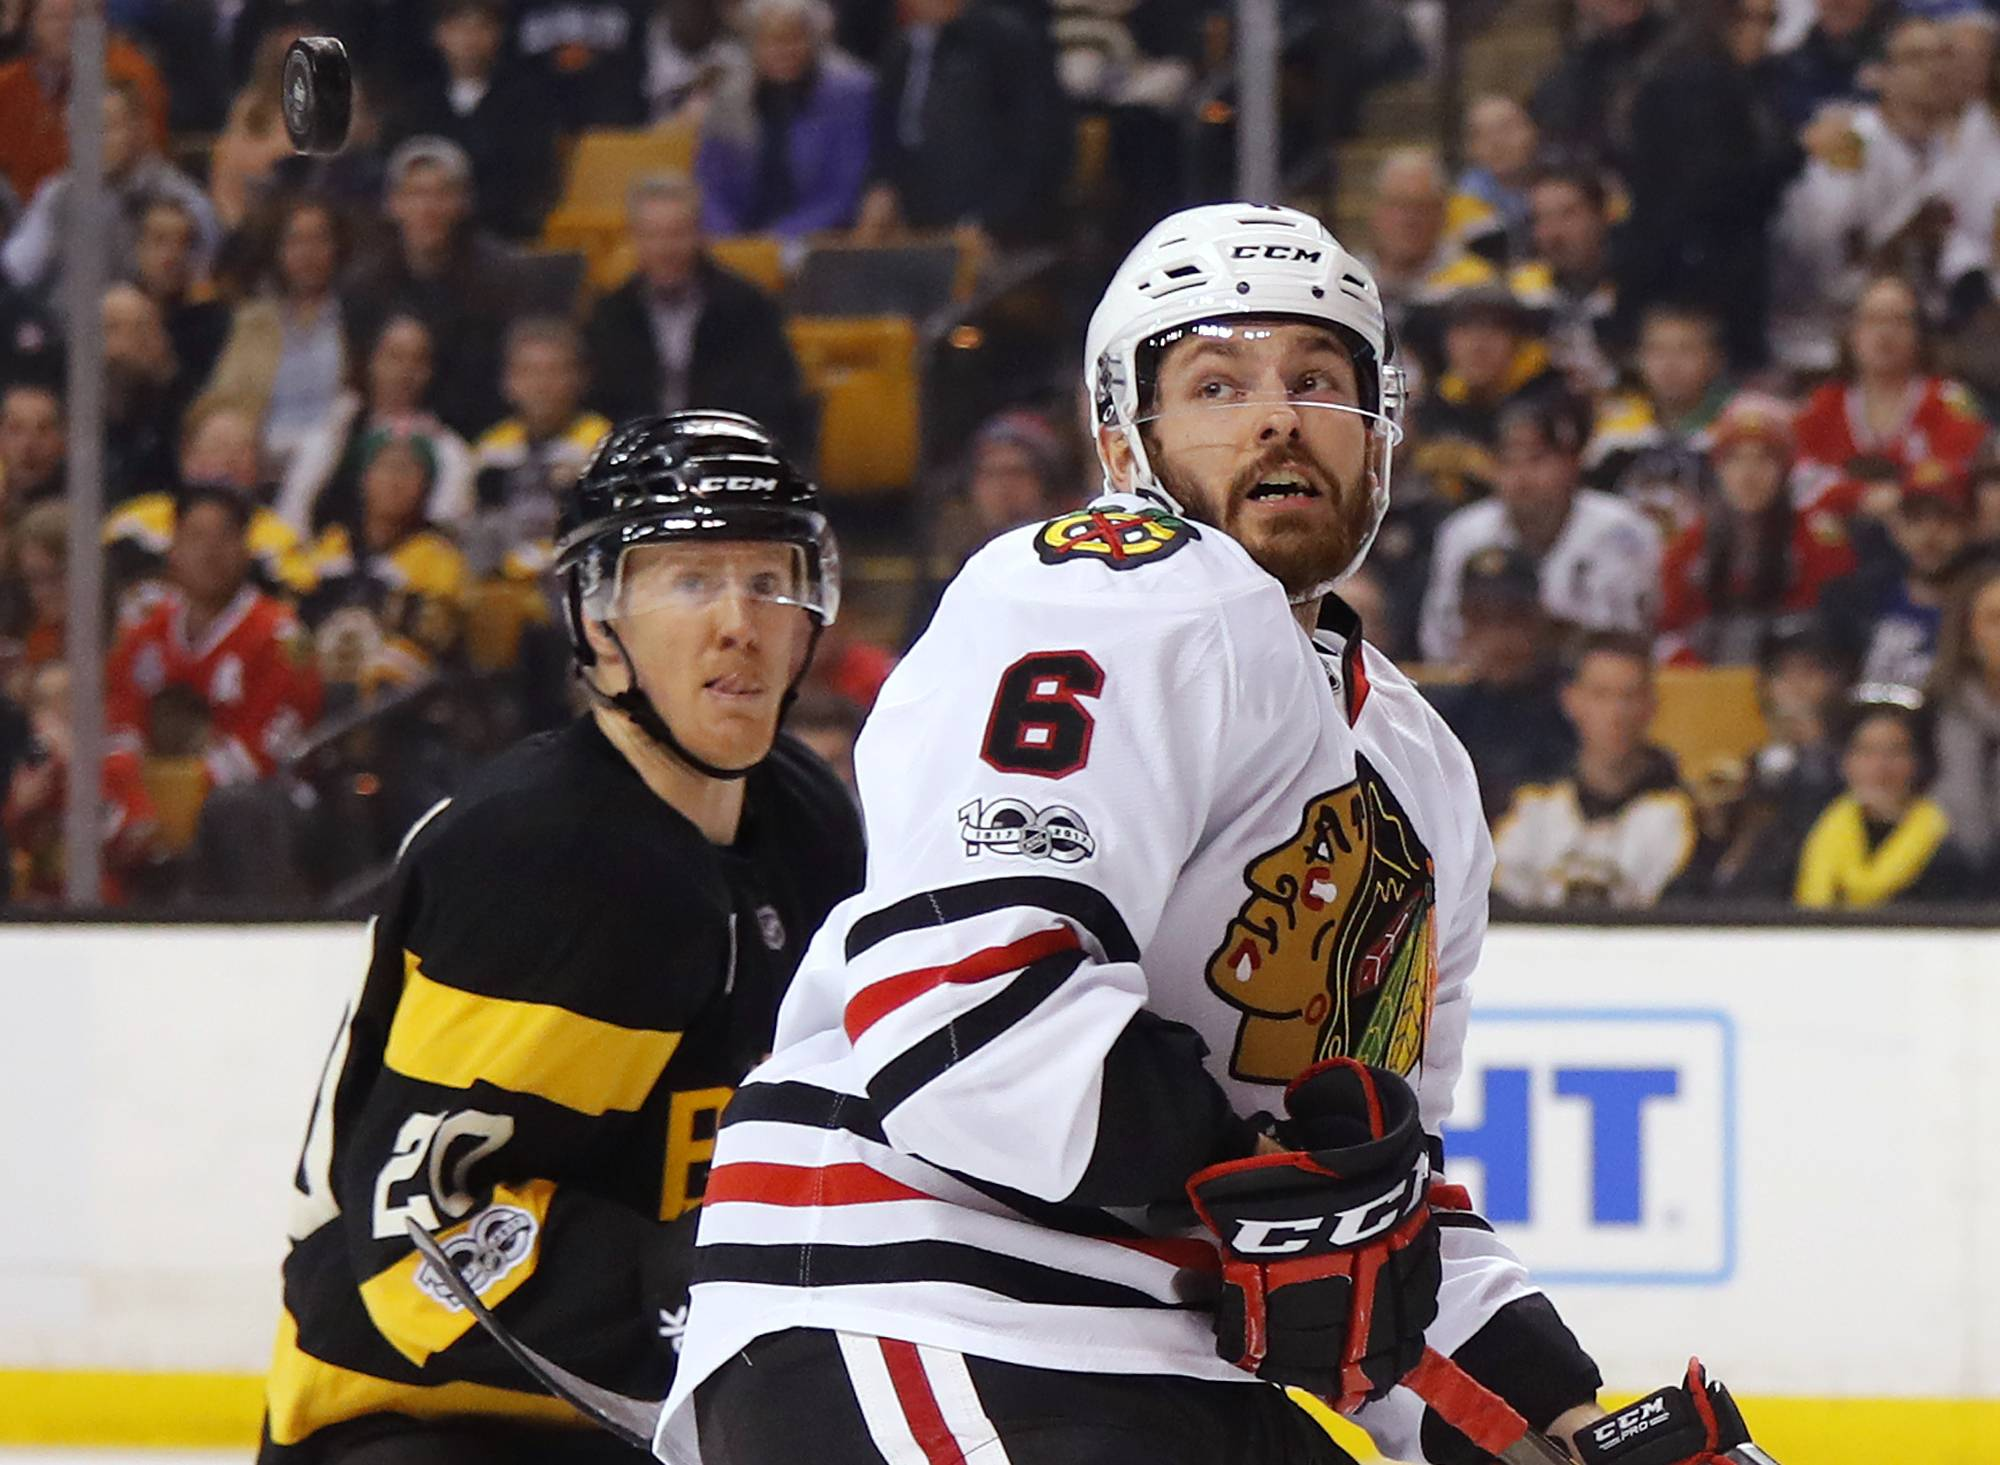 Chicago Blackhawks defenseman Michal Kempny (6) and Boston Bruins' Riley Nash watch the puck during the second period of an NHL hockey game in Boston on Friday, Jan. 20, 2017.